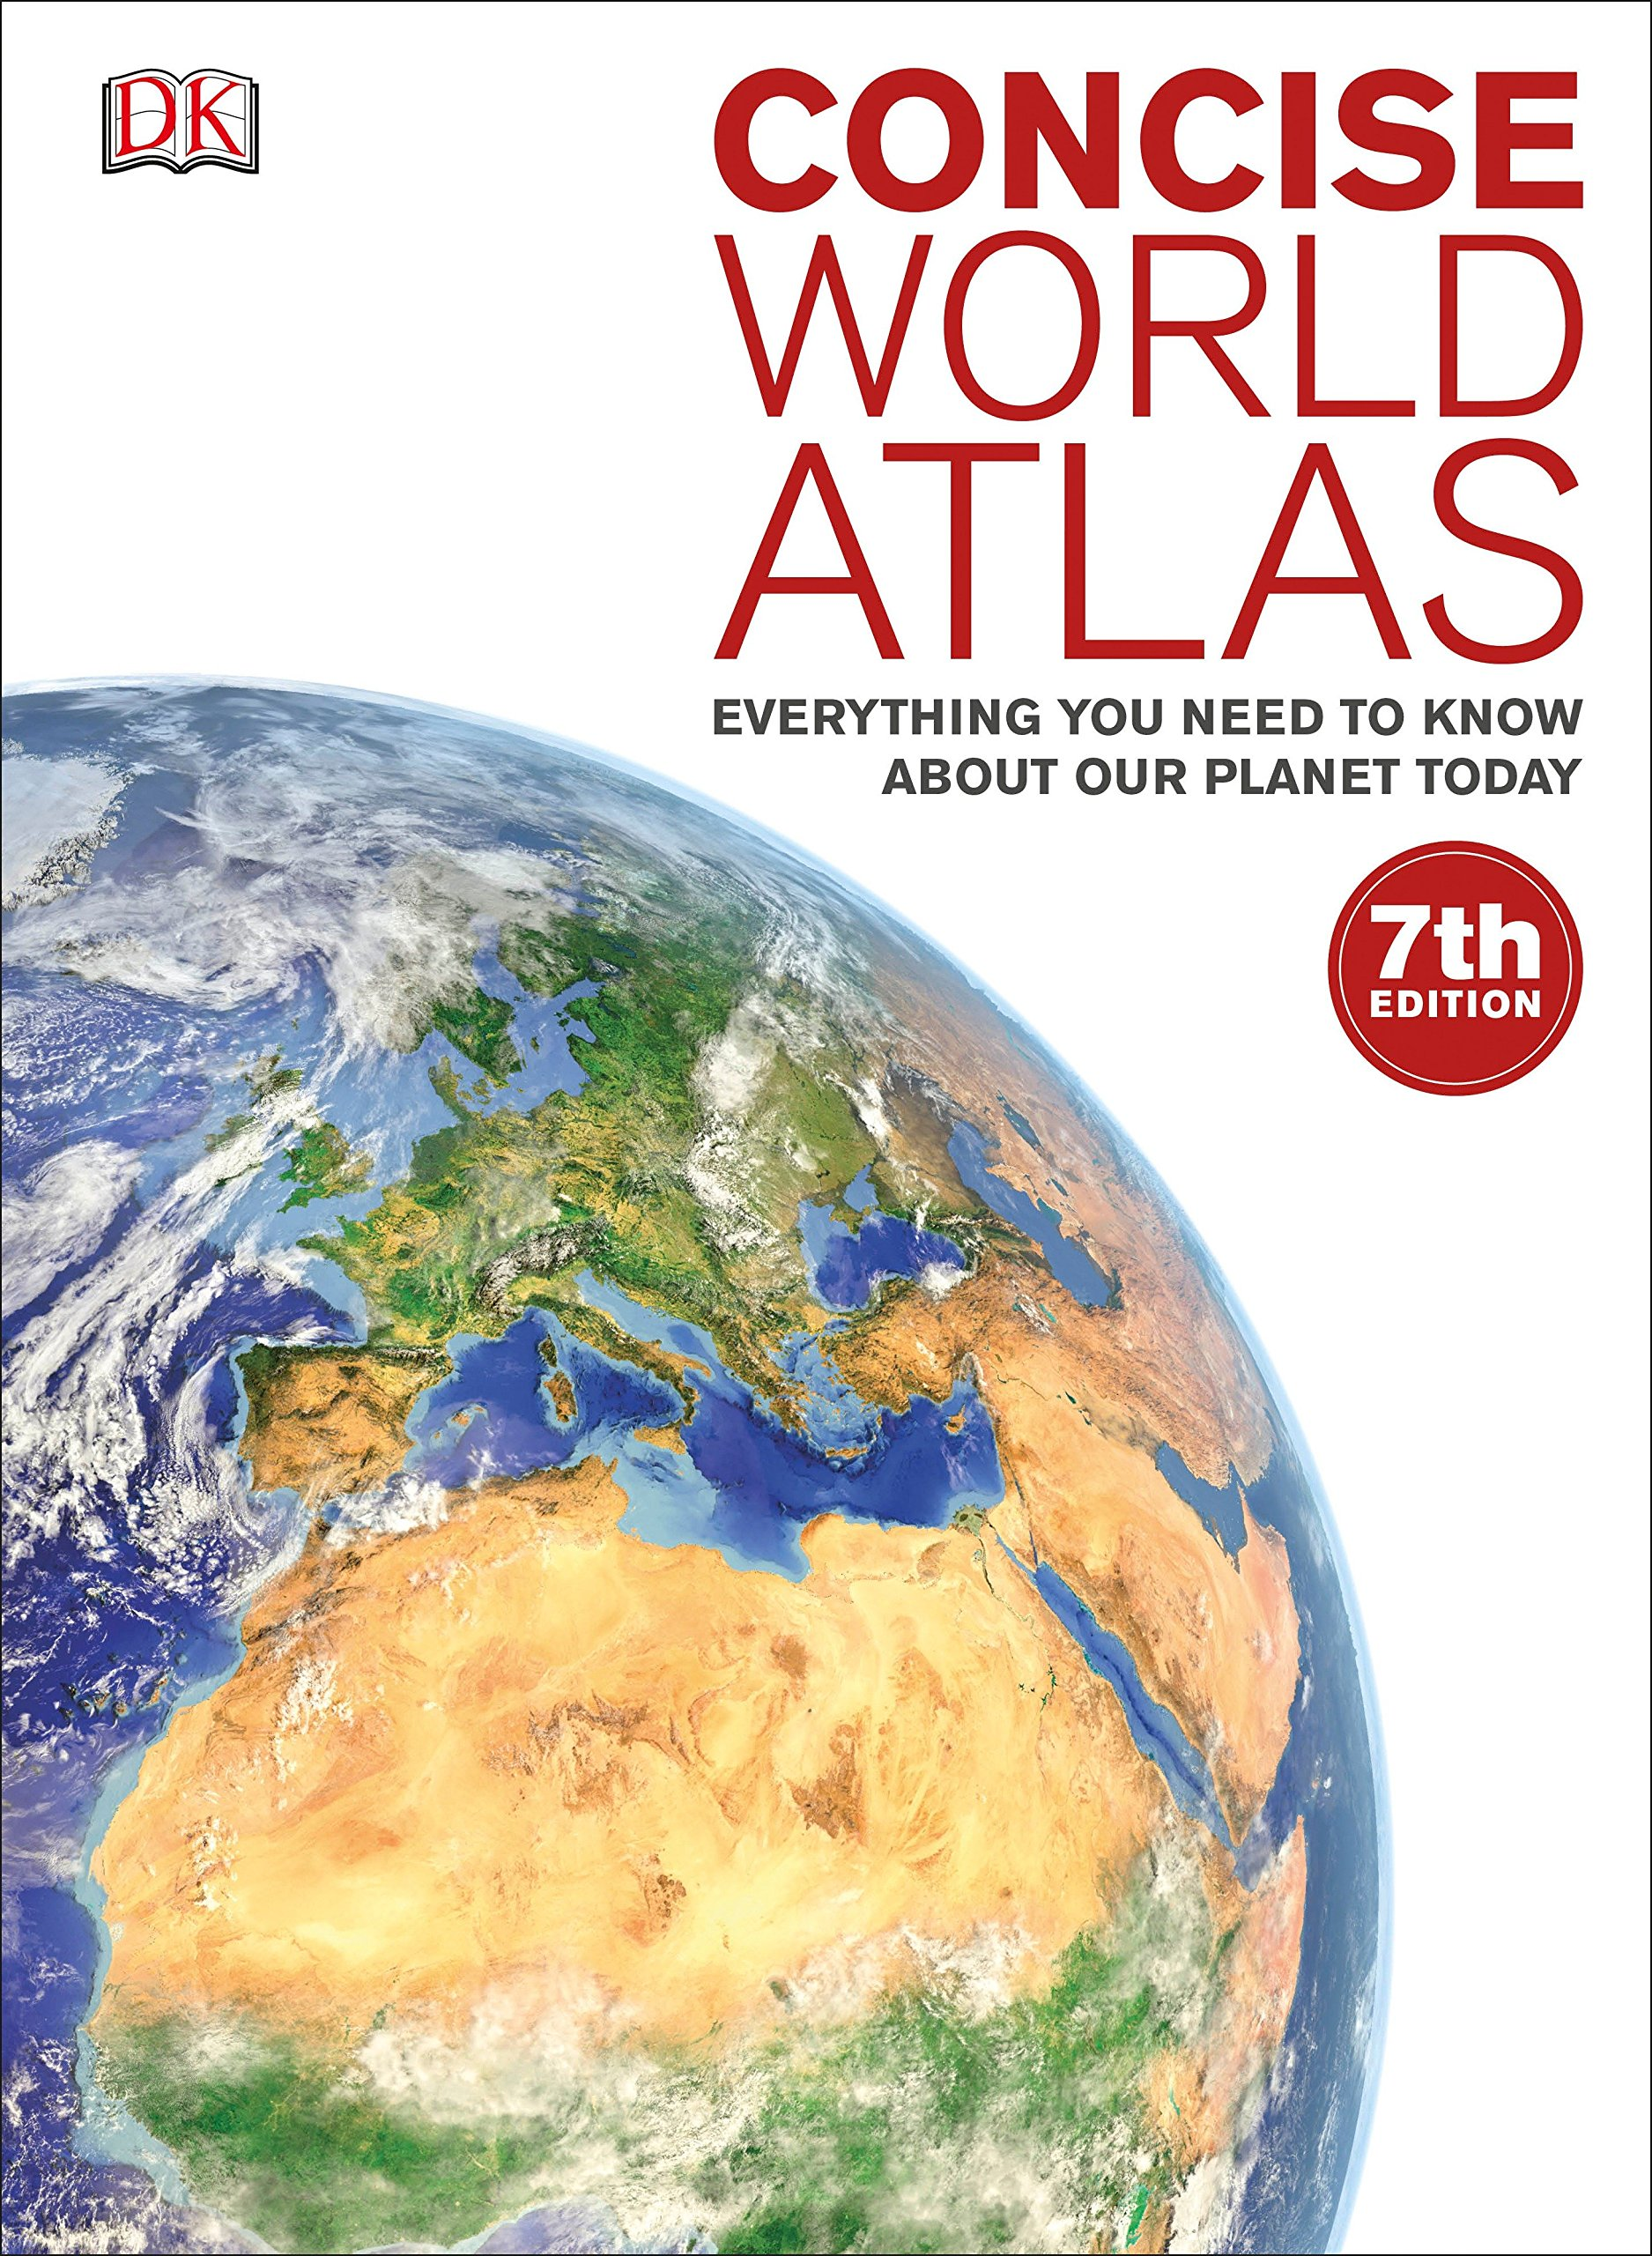 Concise World Atlas: Everything You Need to Know About Our Planet Today by Dk Pub